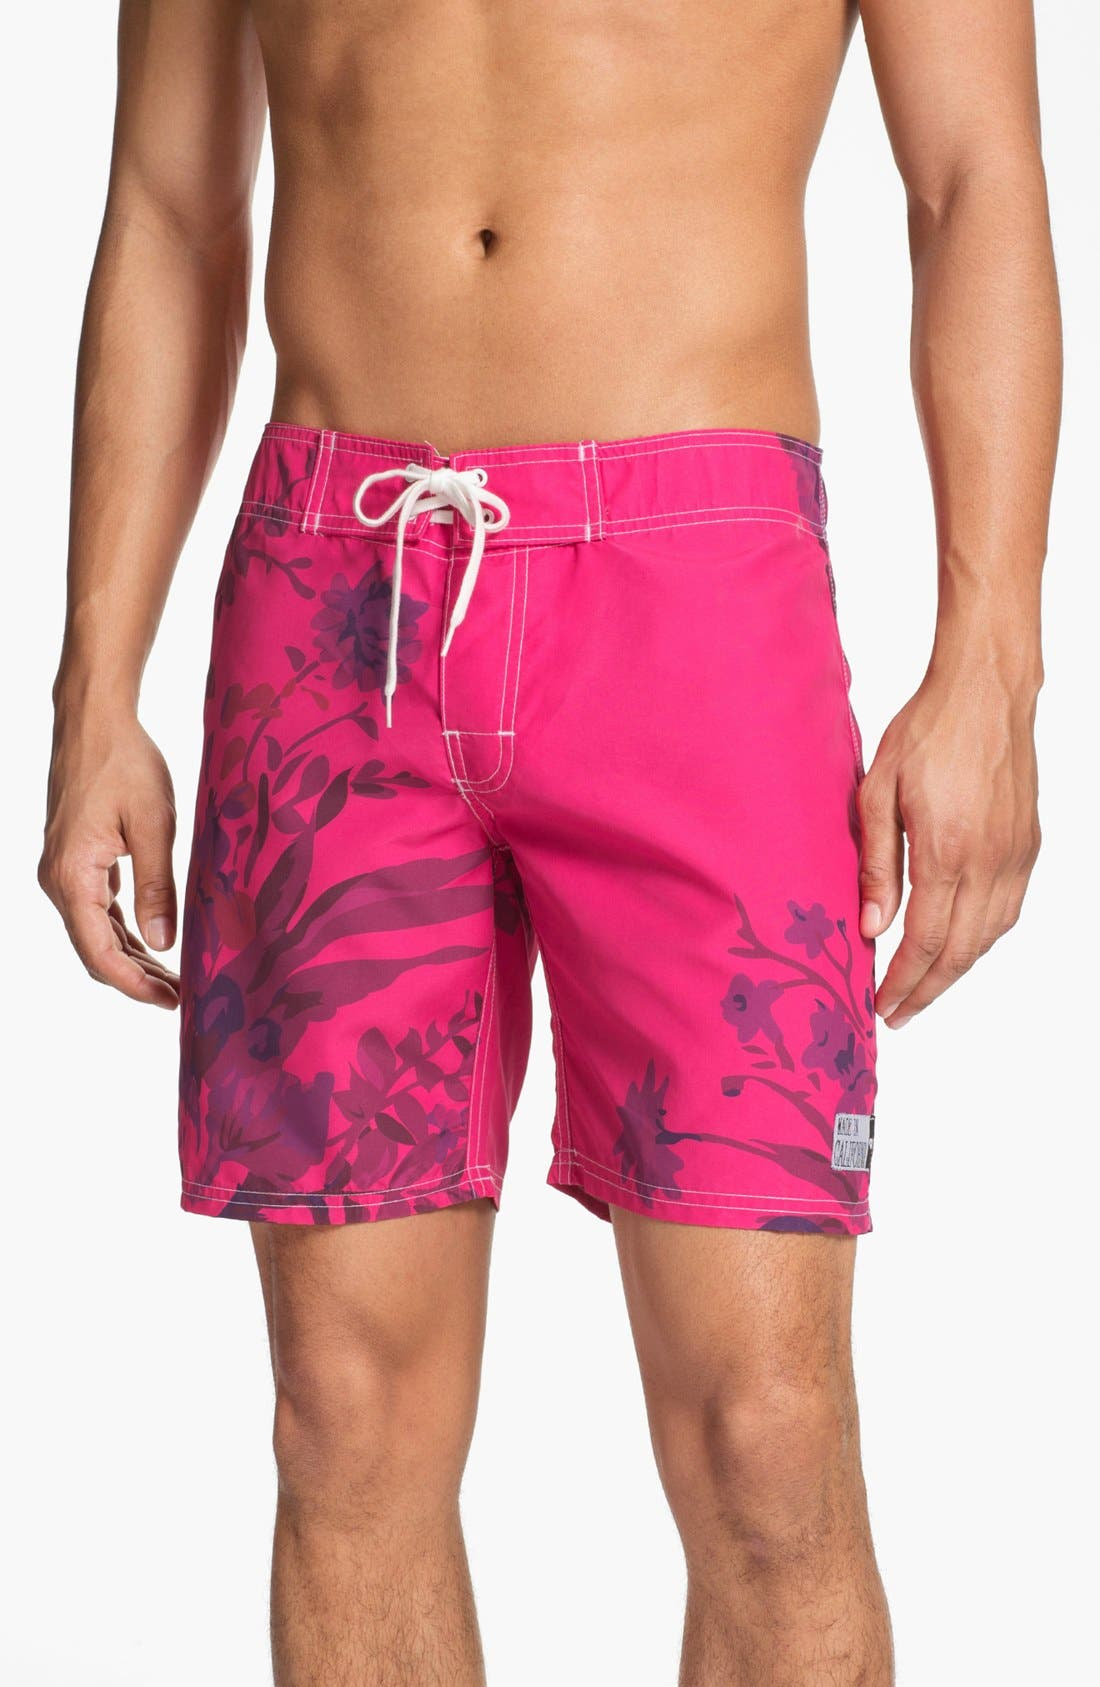 Alternate Image 1 Selected - ambsn 'Trudy' Board Shorts